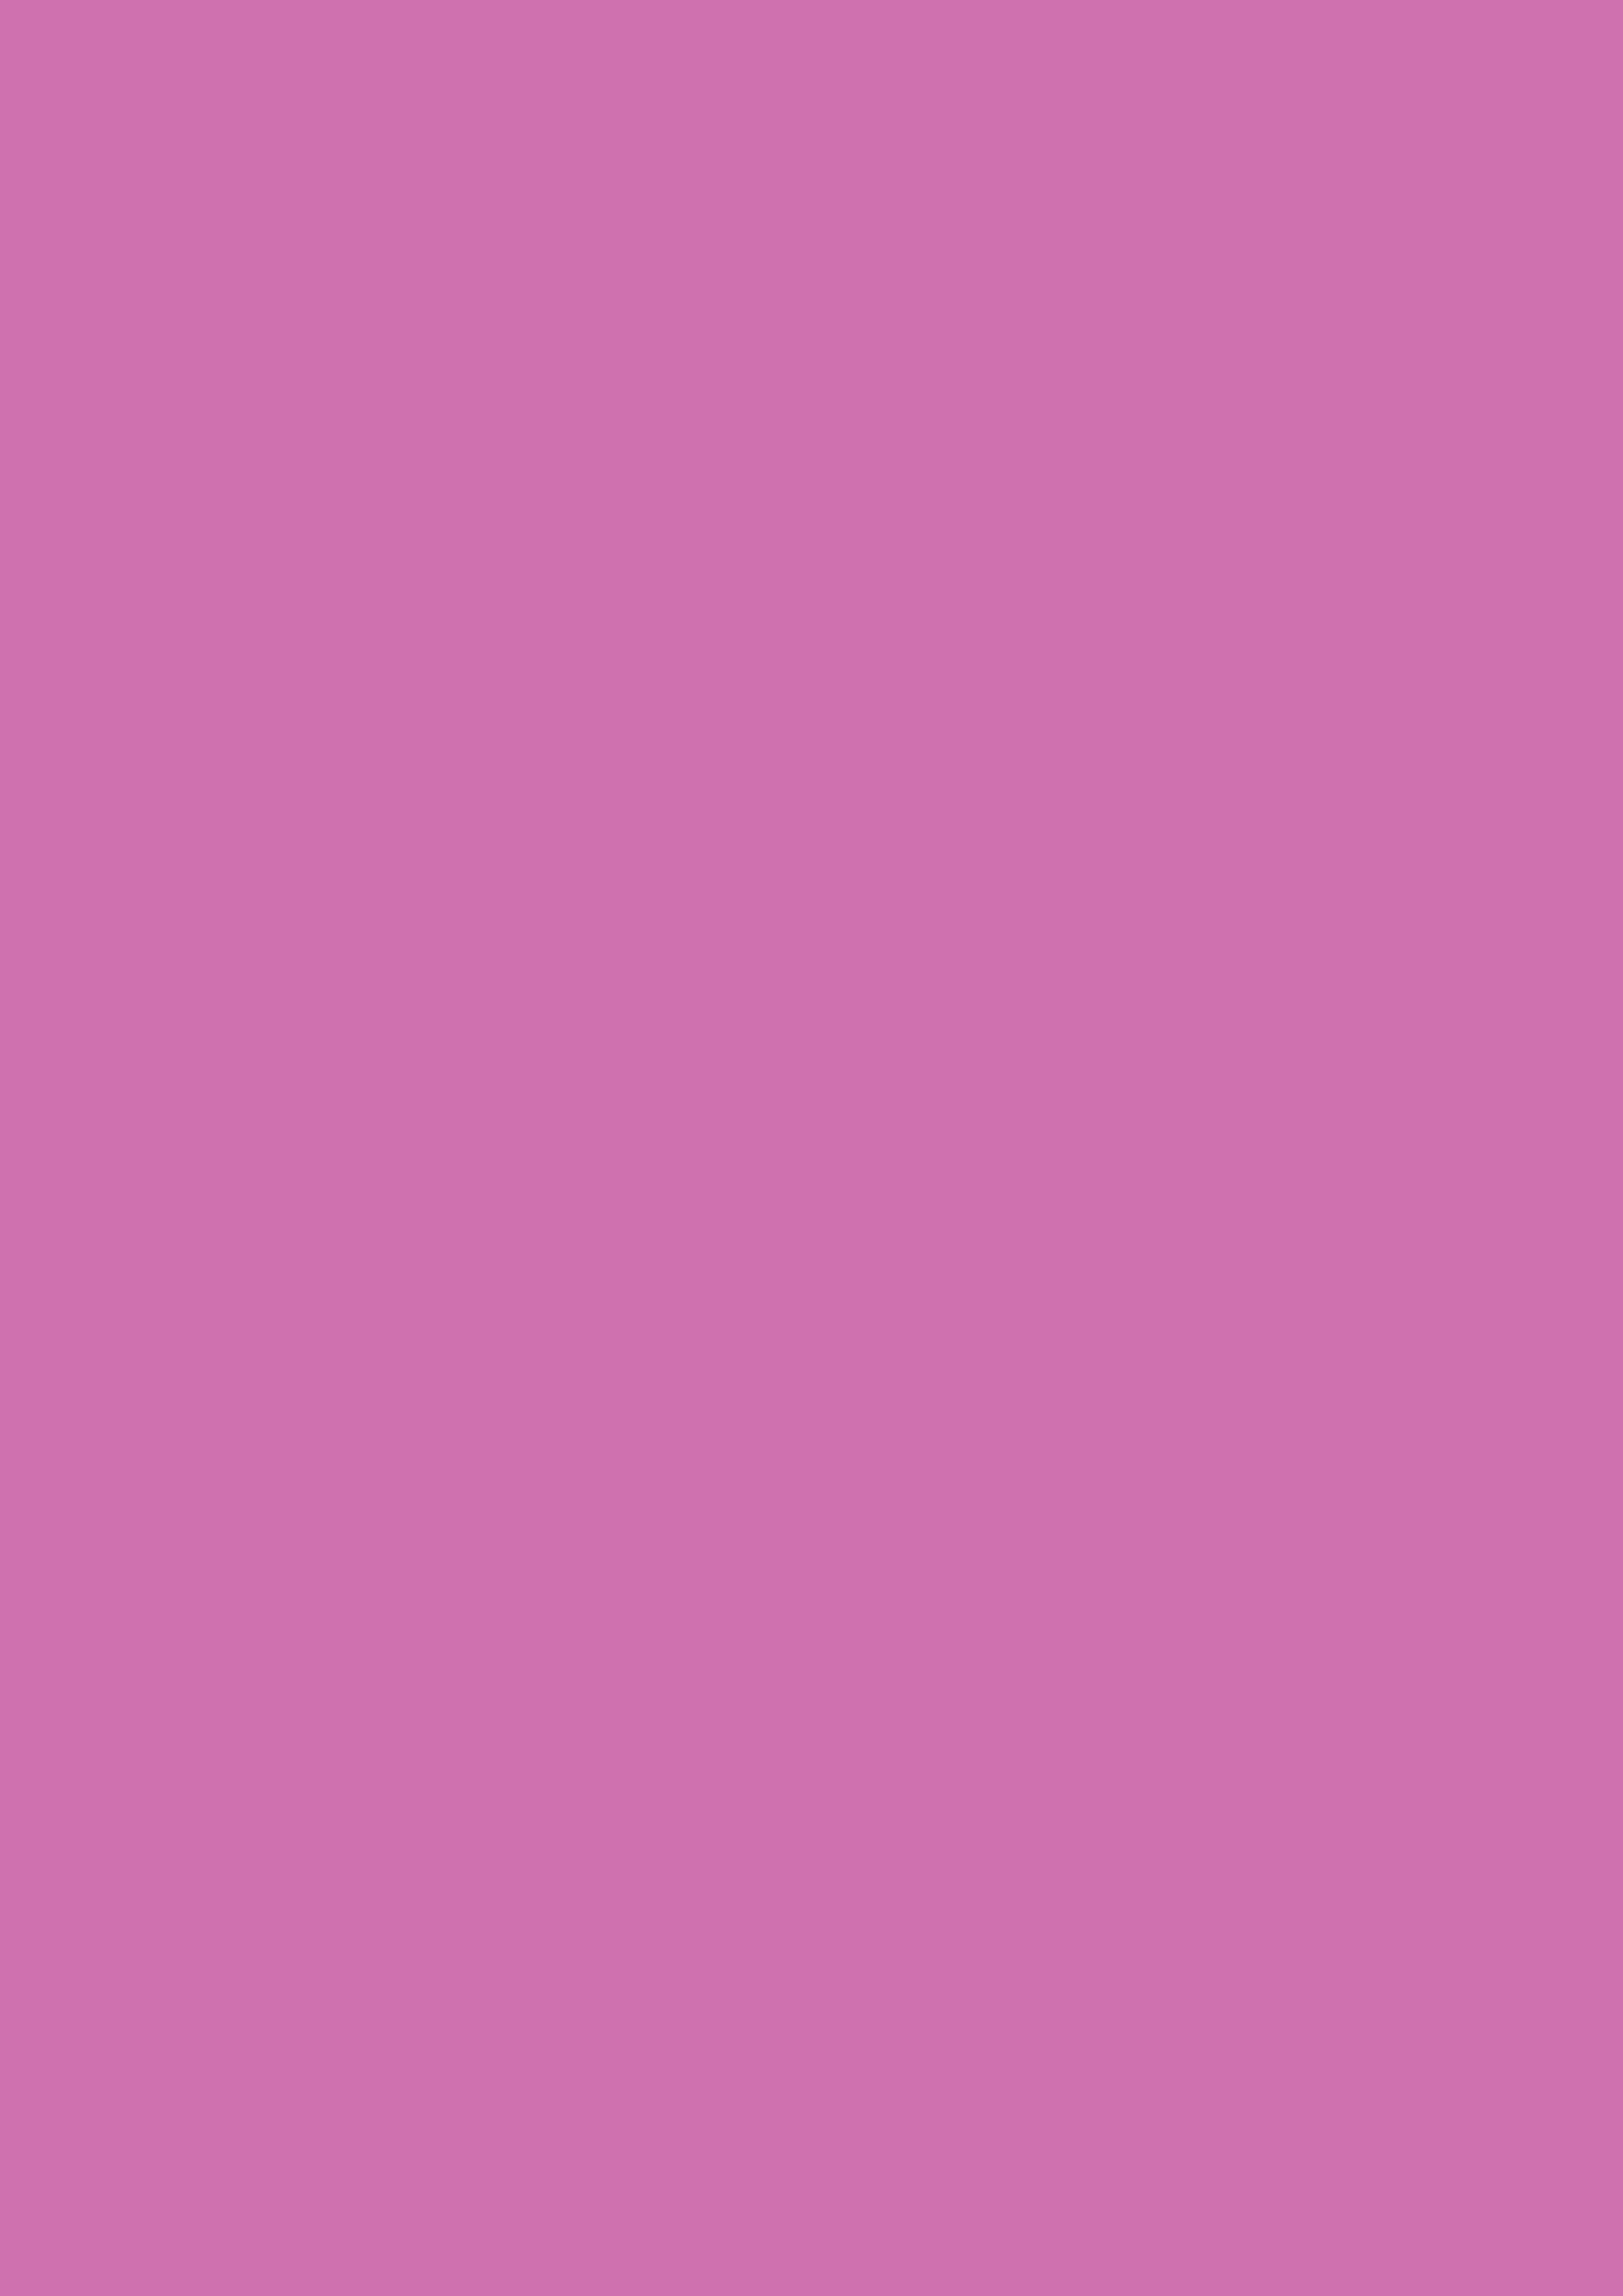 2480x3508 Sky Magenta Solid Color Background